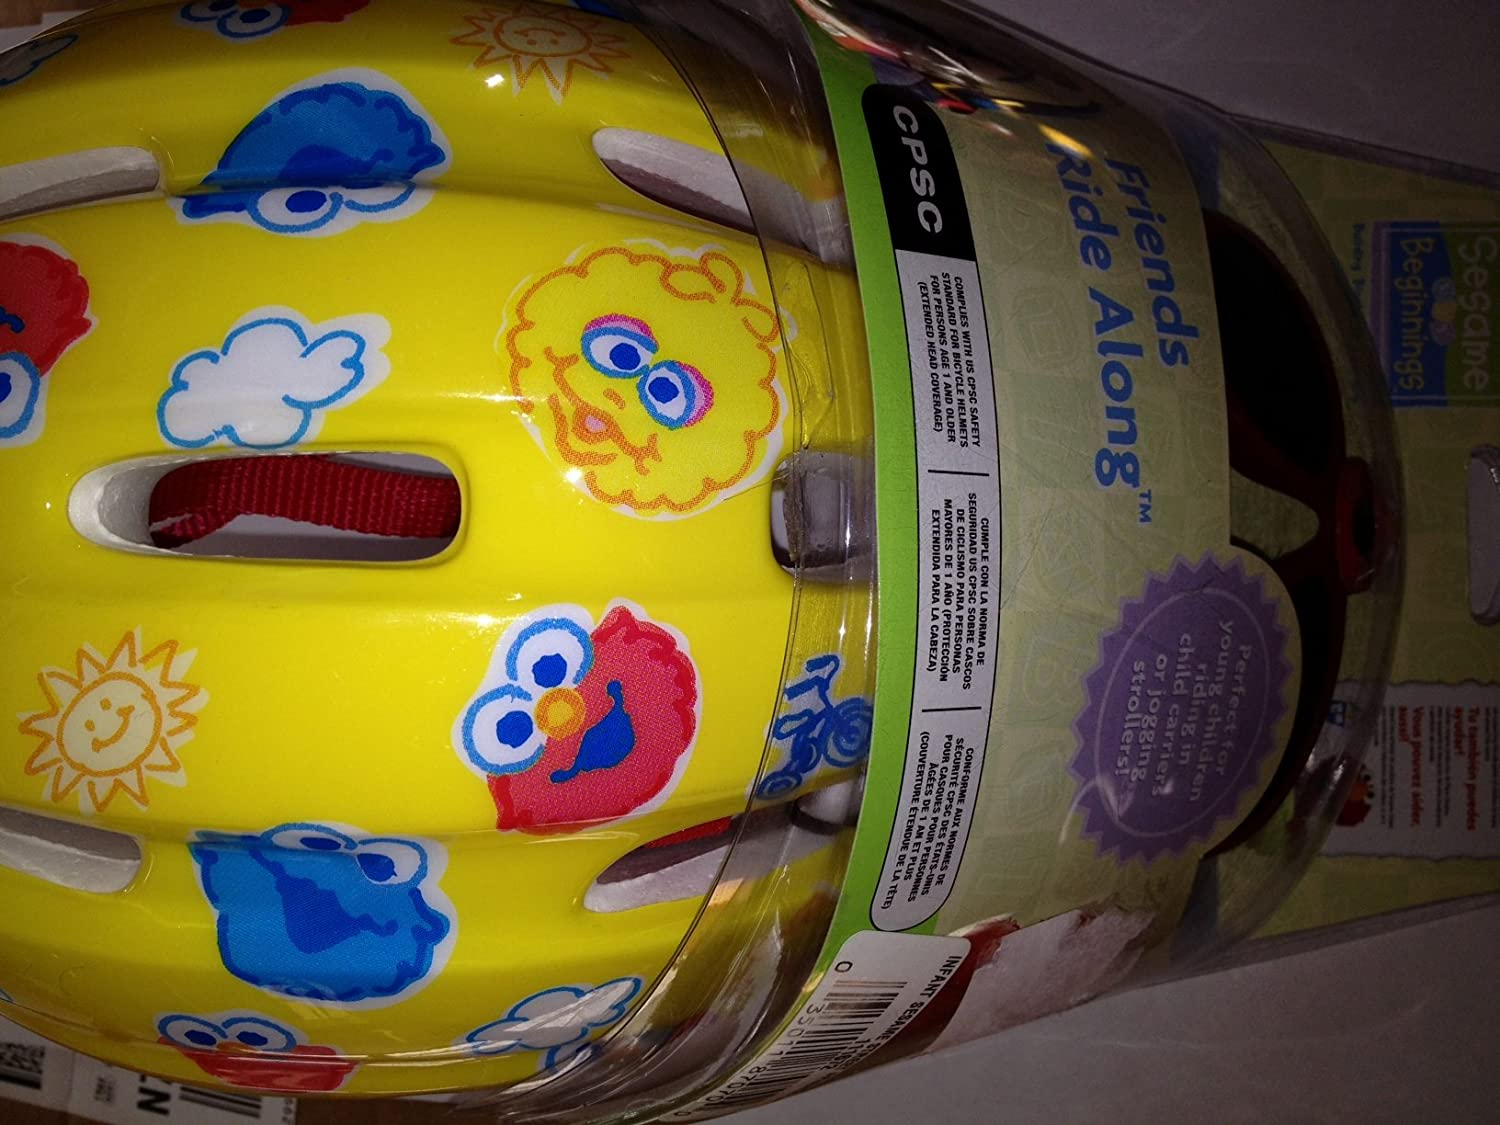 Amazon.com : Bell Sesame Street Helmet with Elmo Sunglasses Friends Ride Along Sesame Beginnings : Bike Helmets : Sports & Outdoors